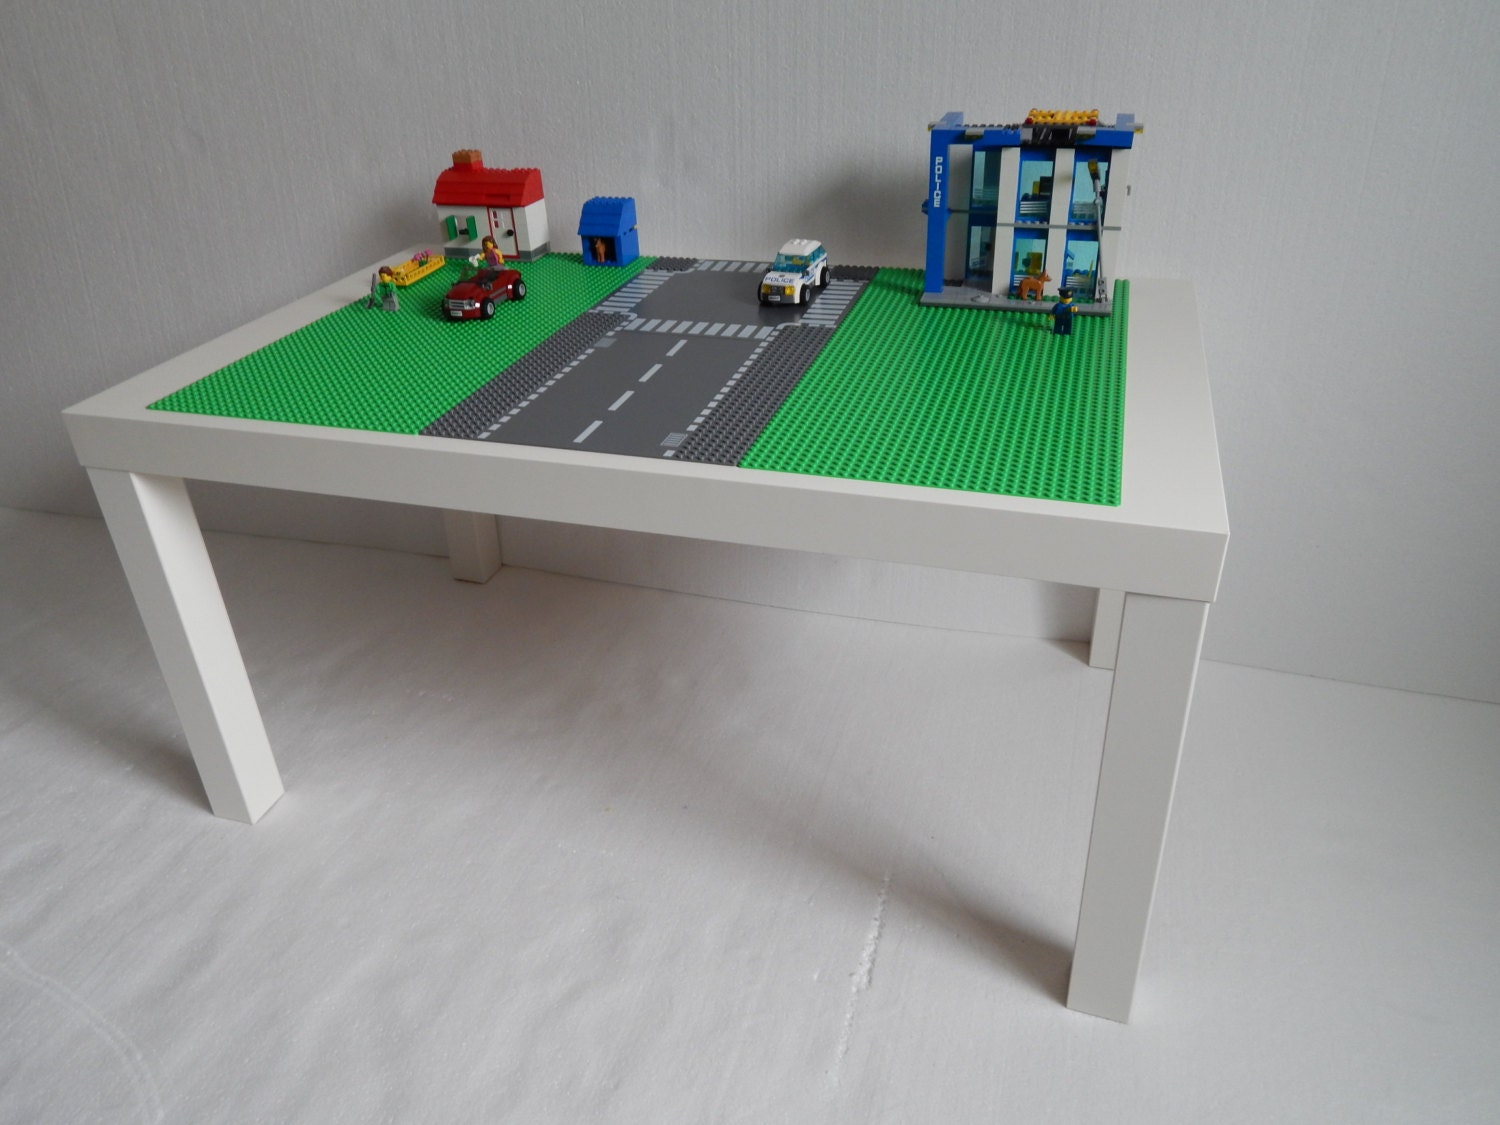 large lego table 30x20 green with road way lego. Black Bedroom Furniture Sets. Home Design Ideas